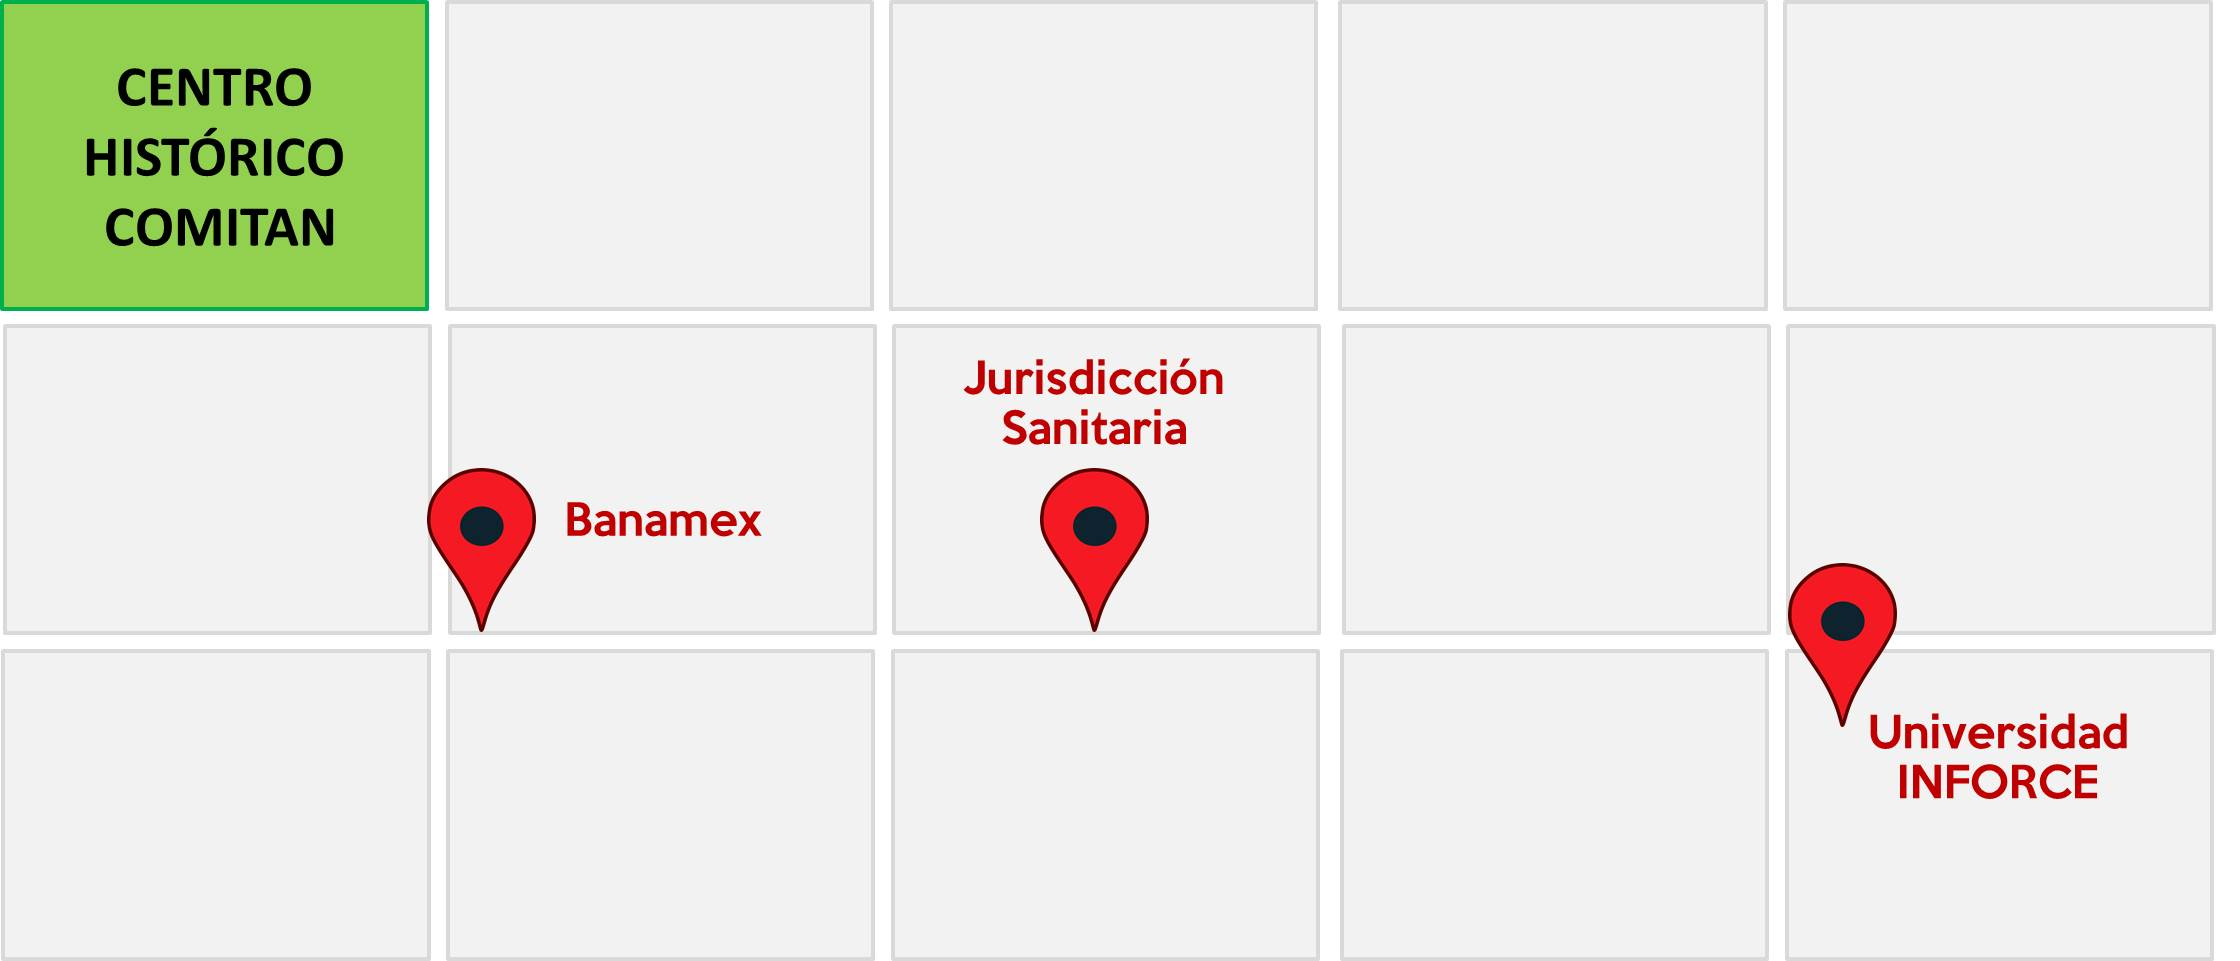 mapa-localizacion-universidad-inforce-comitan.jpg